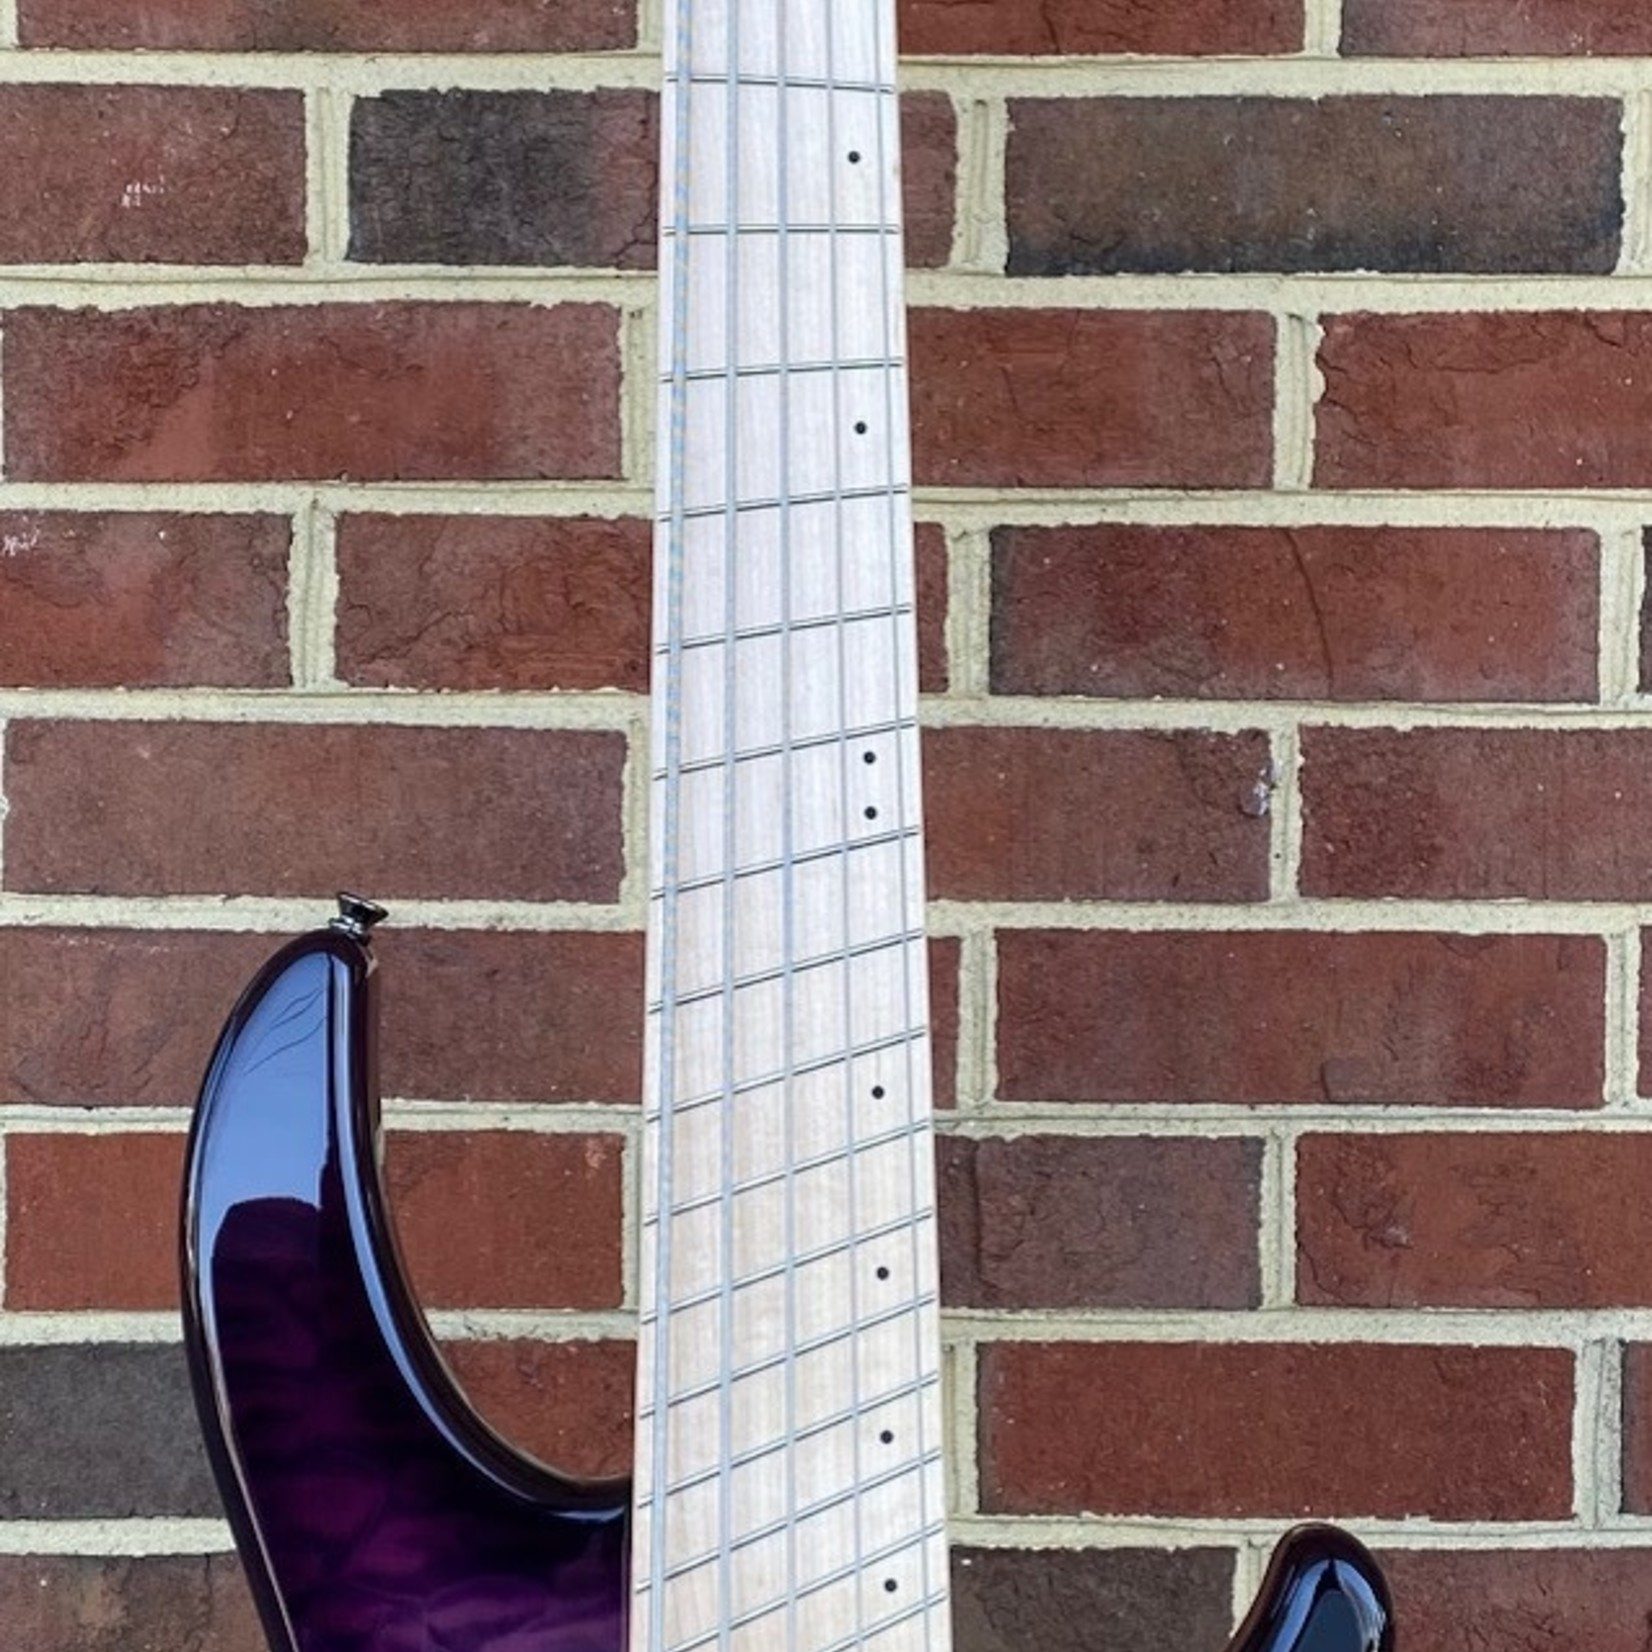 Dingwall Dingwall Combustion 5-String, 3x Pickups, Ultra Violet, Quilted Maple Top, Swamp Ash Body, Maple Fretboard, Dingwall Gig Bag, SN# 7278